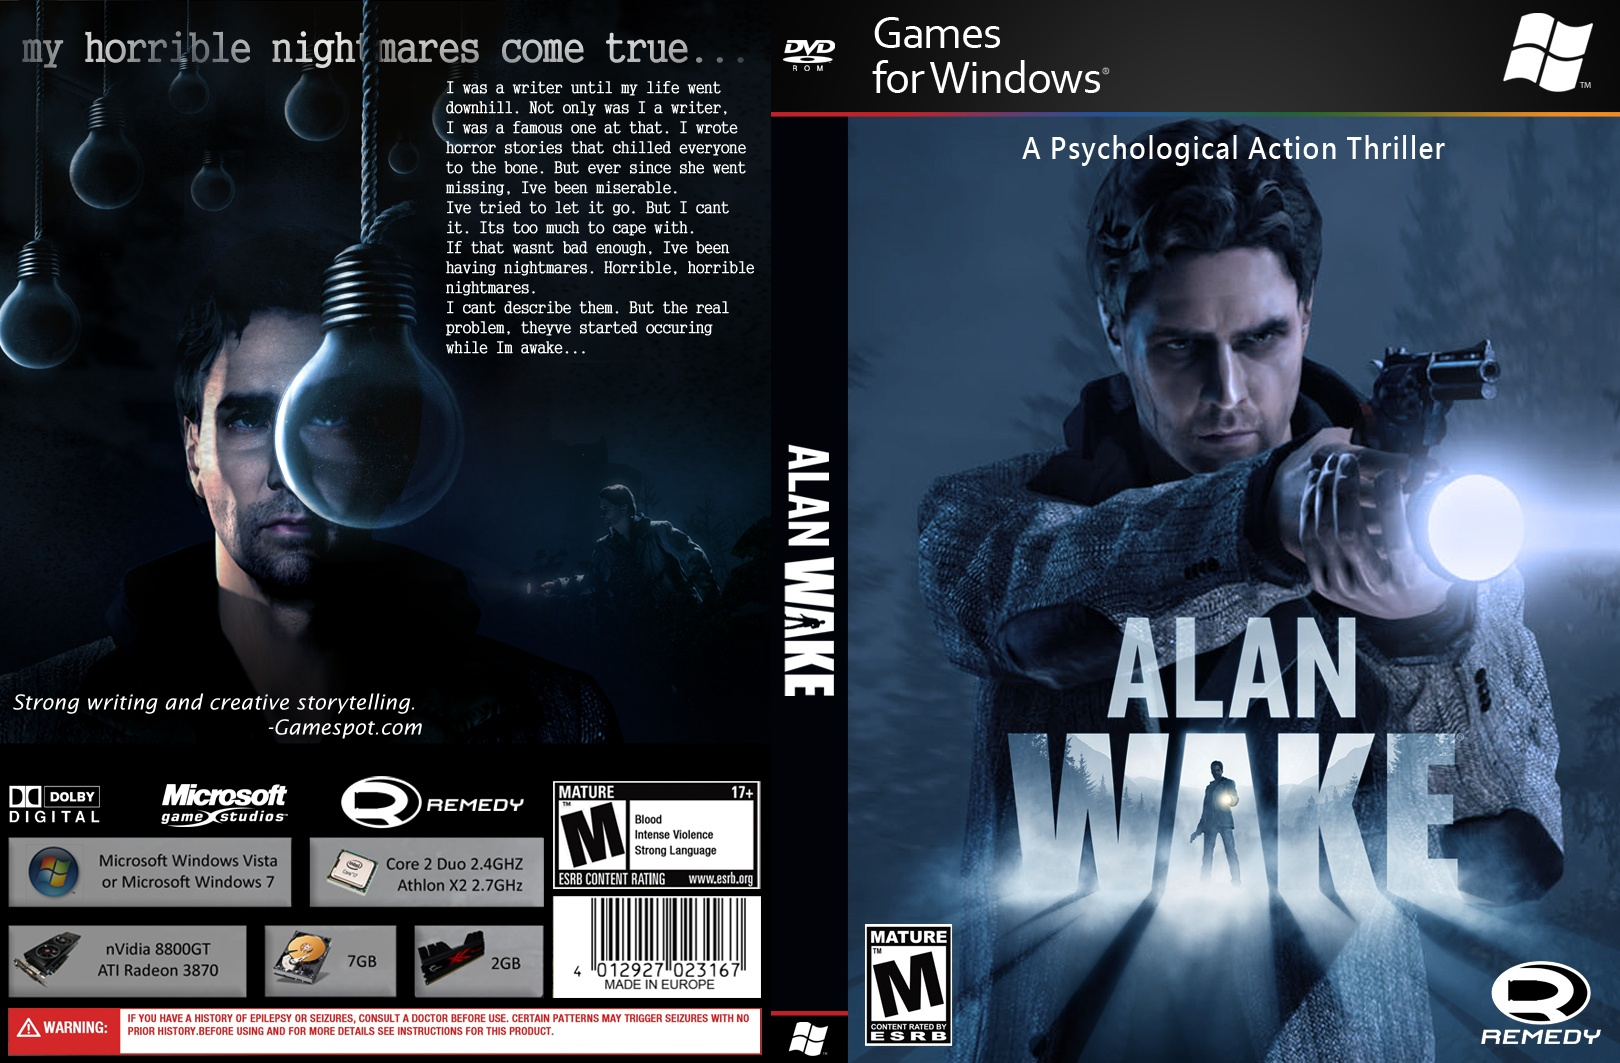 Viewing full size Alan Wake box cover